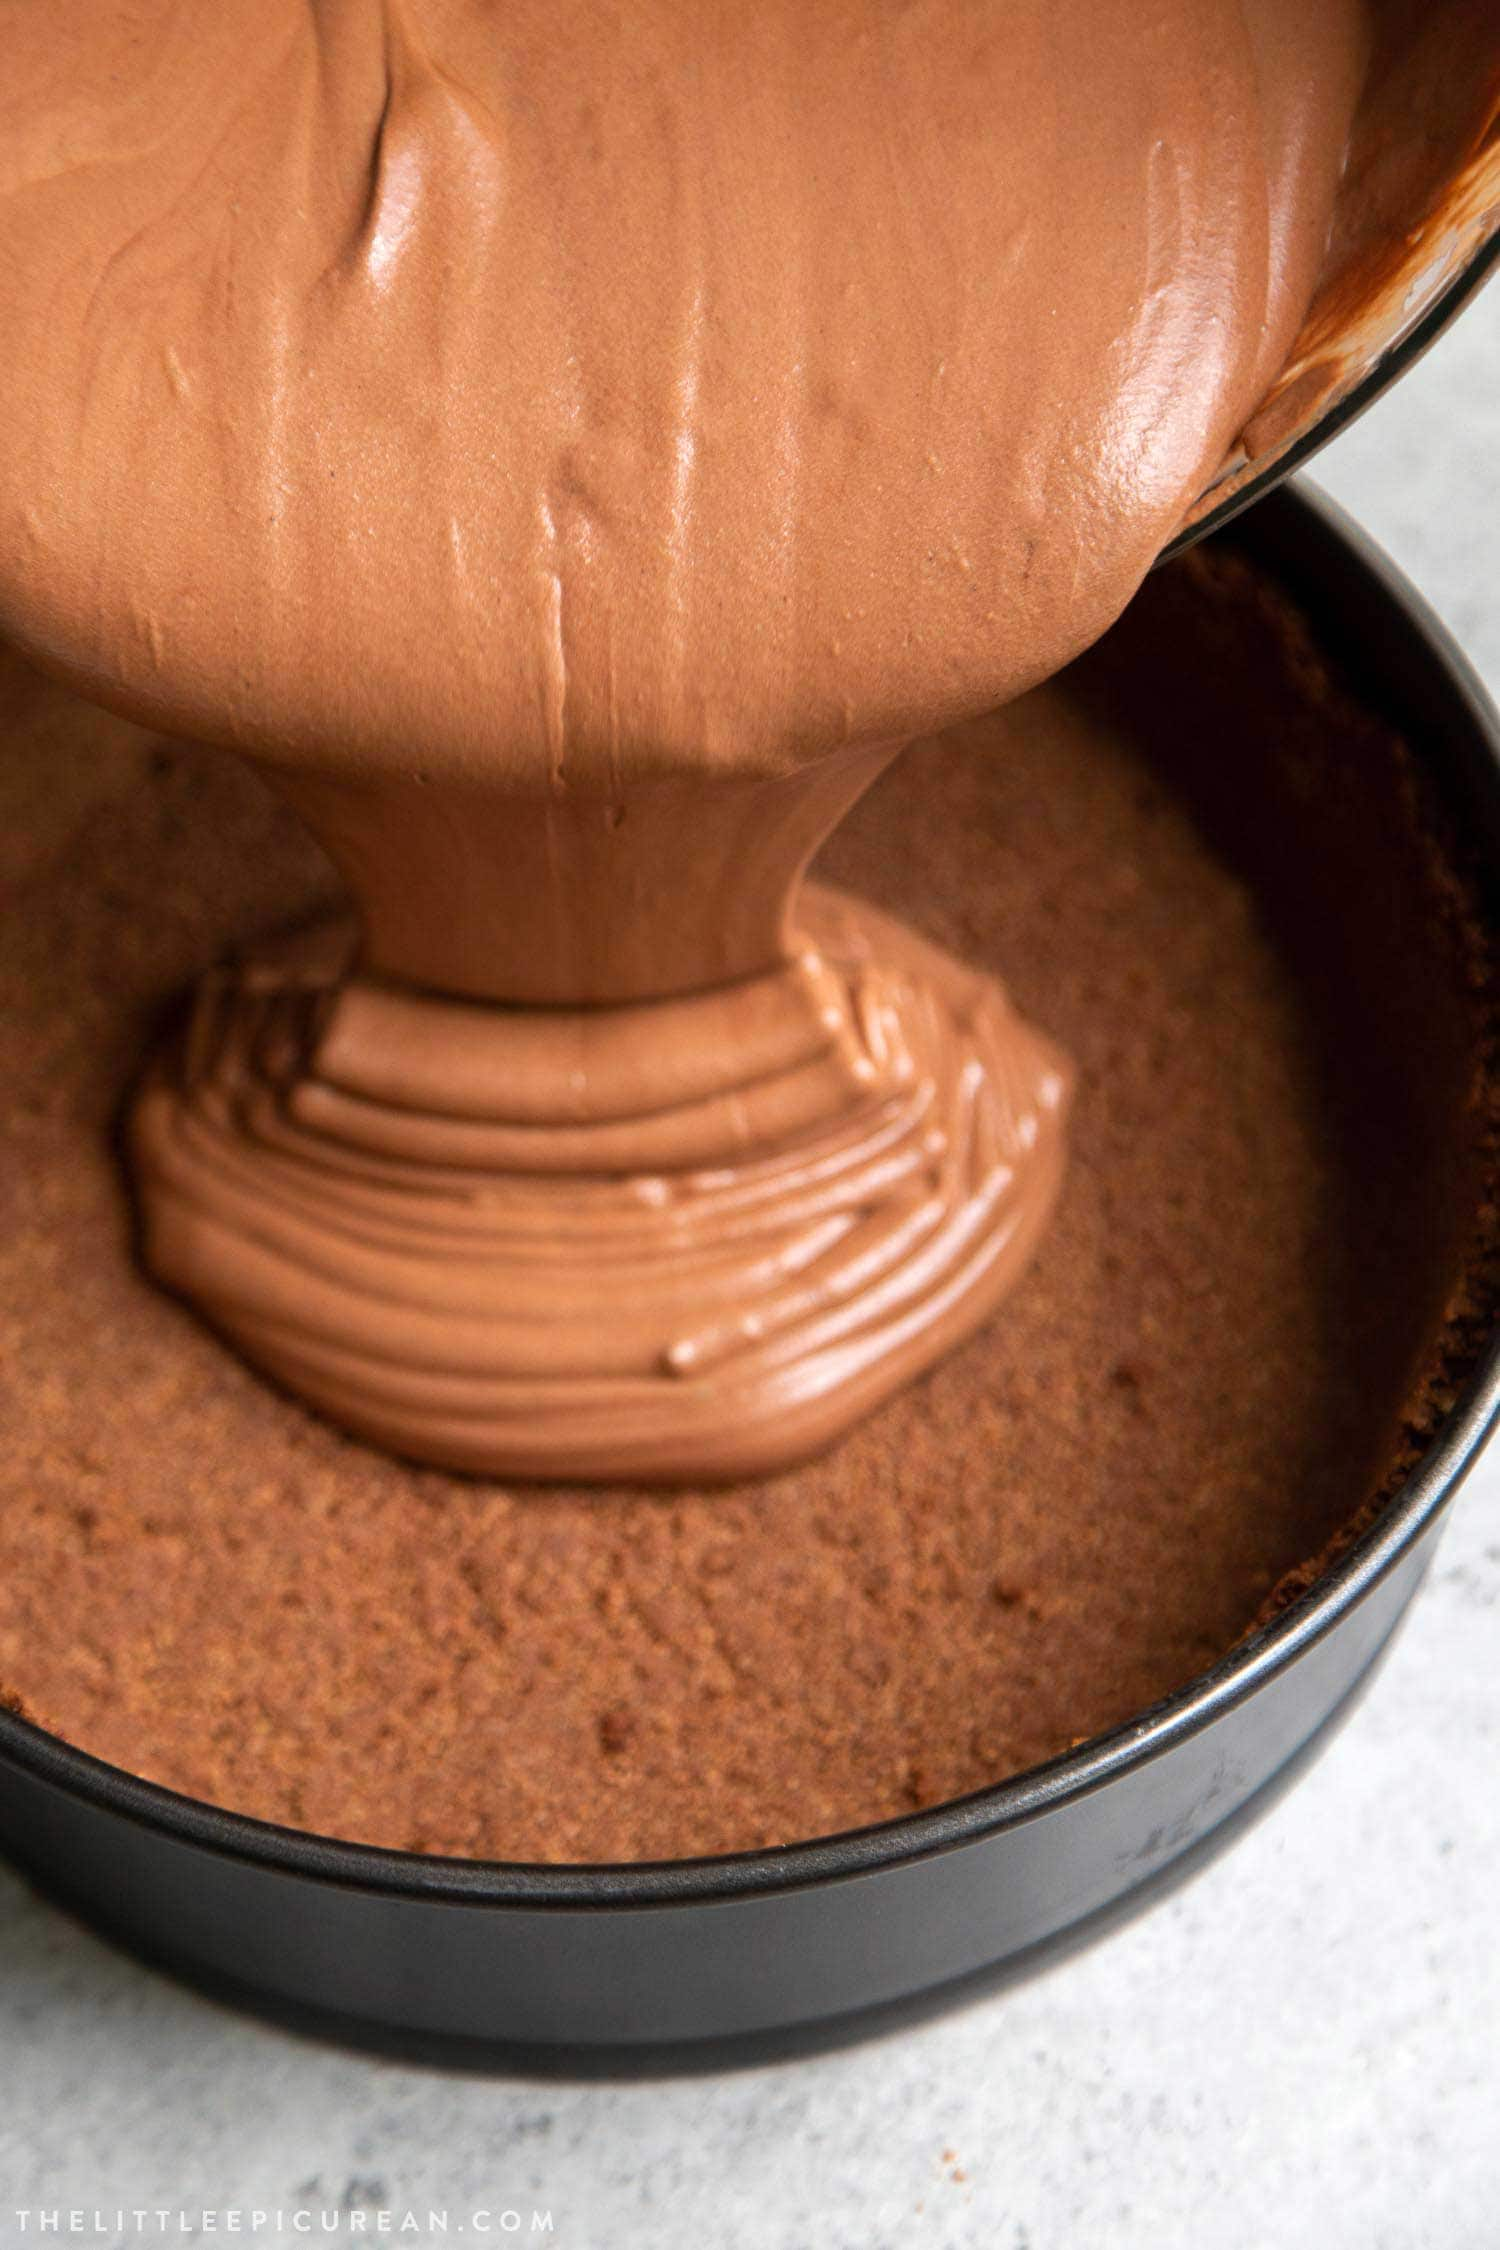 Pouring chocolate mousse into chocolate graham cracker pie shell